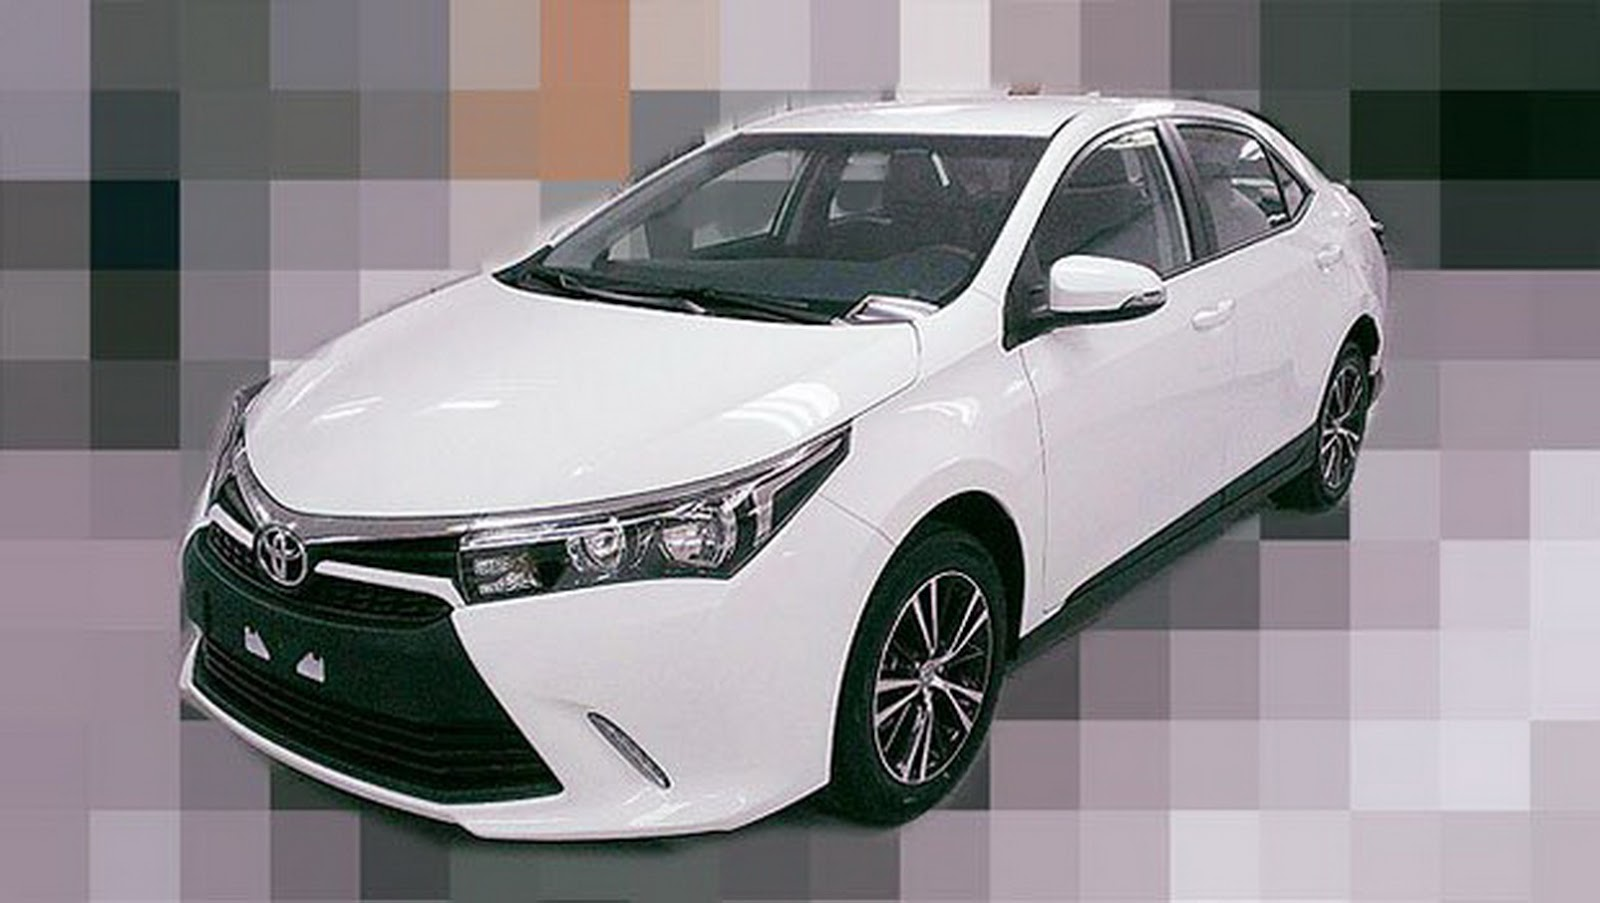 is this europe's 2016 toyota corolla facelift, asia's new corolla